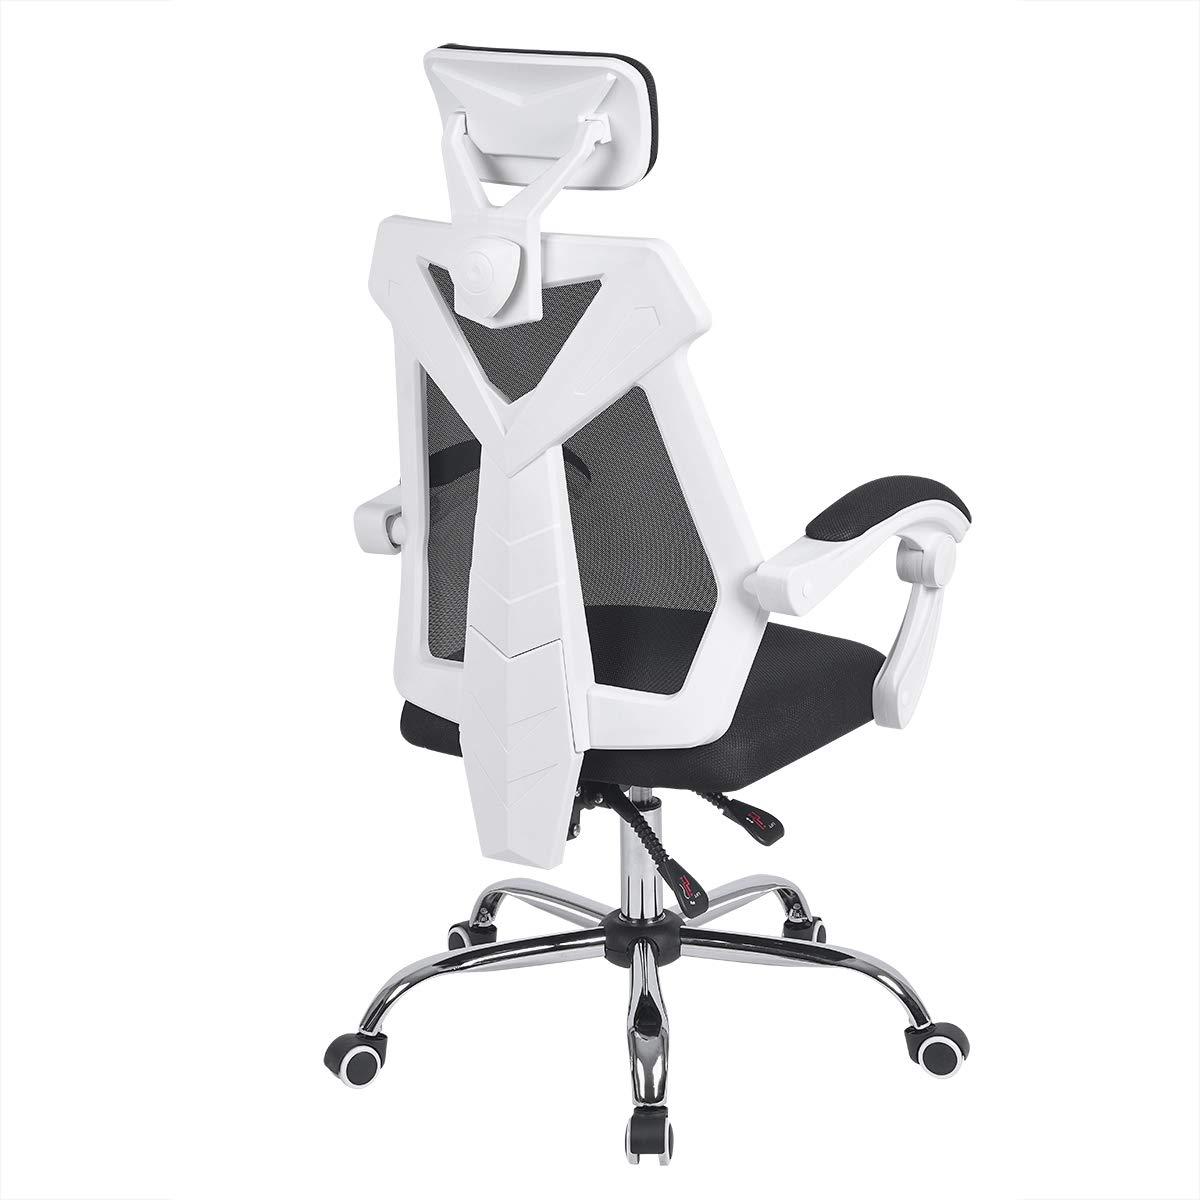 Gaming Mesh Chair for Managerial and Executive Office,Ergonomic Design Racing Computer Desk Office Chair